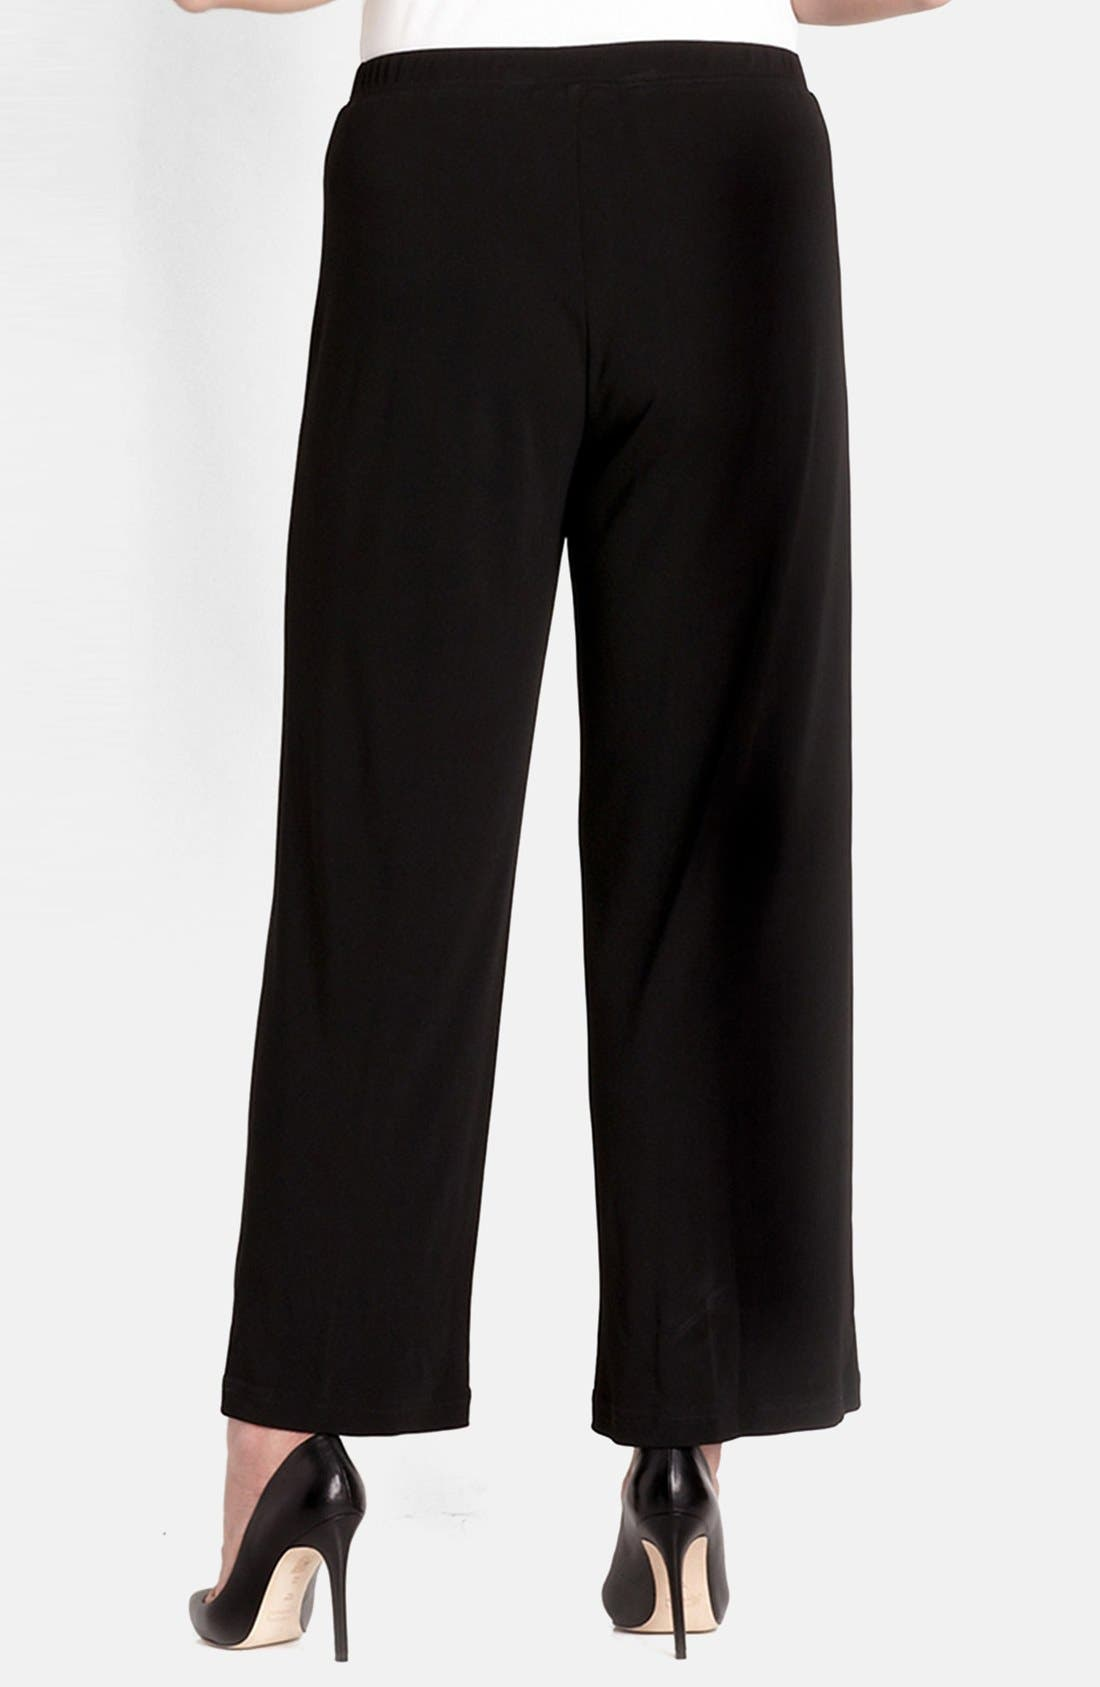 Straight Leg Matte Jersey Pants,                             Alternate thumbnail 2, color,                             Black